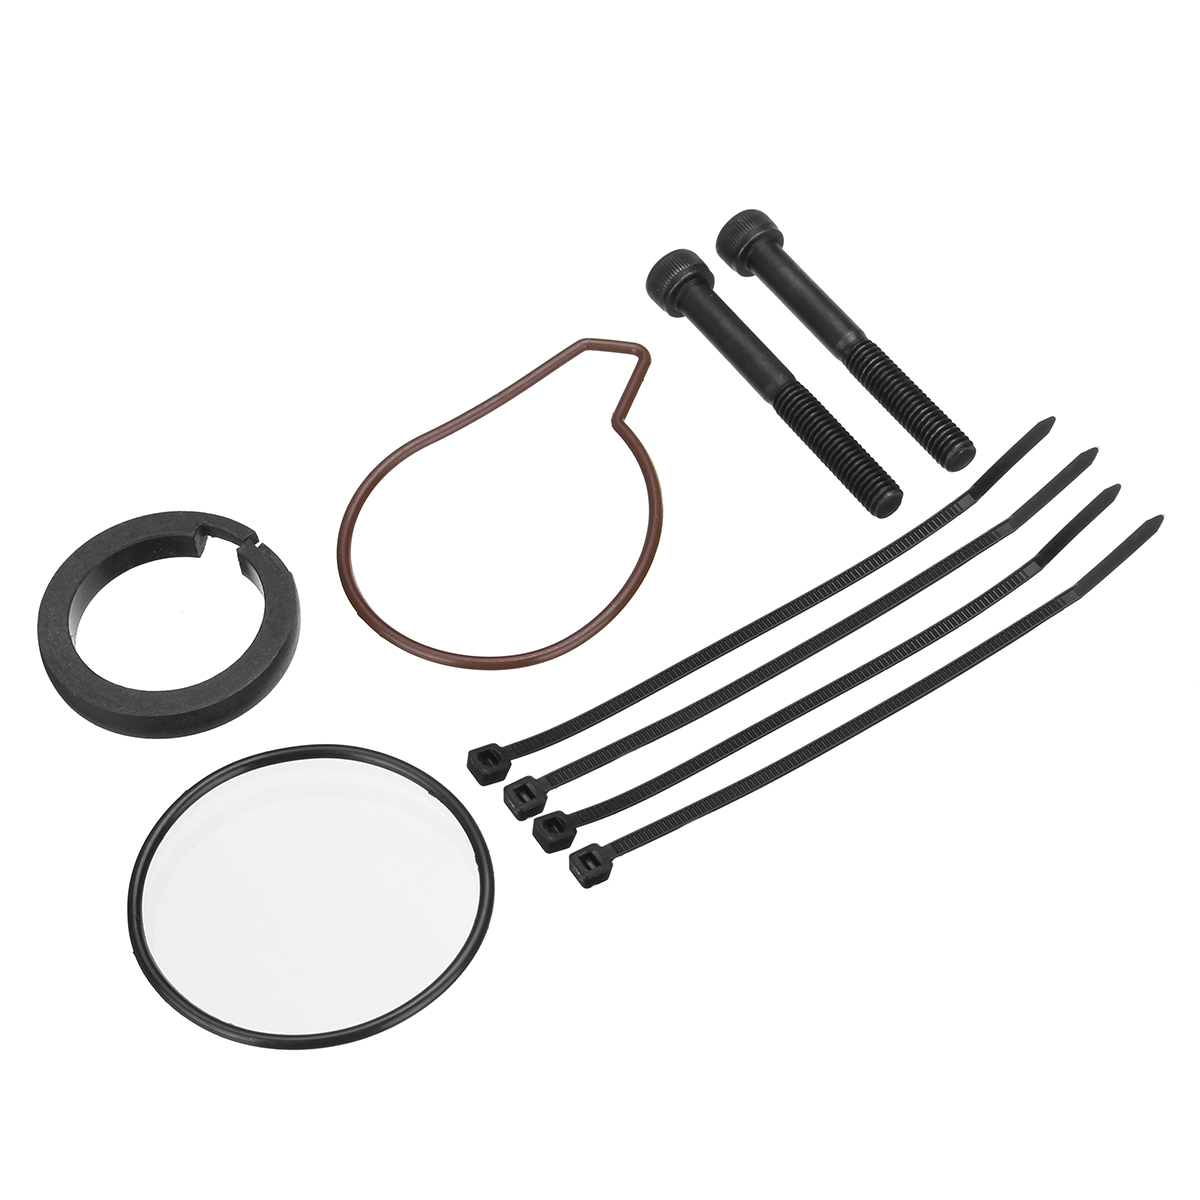 Air Suspension Compressor Repair Kit For Land Rover Range Rover Discovery  II 2 98-04 MK3 L322 02-05 Piston Ring Gasket O-Ring